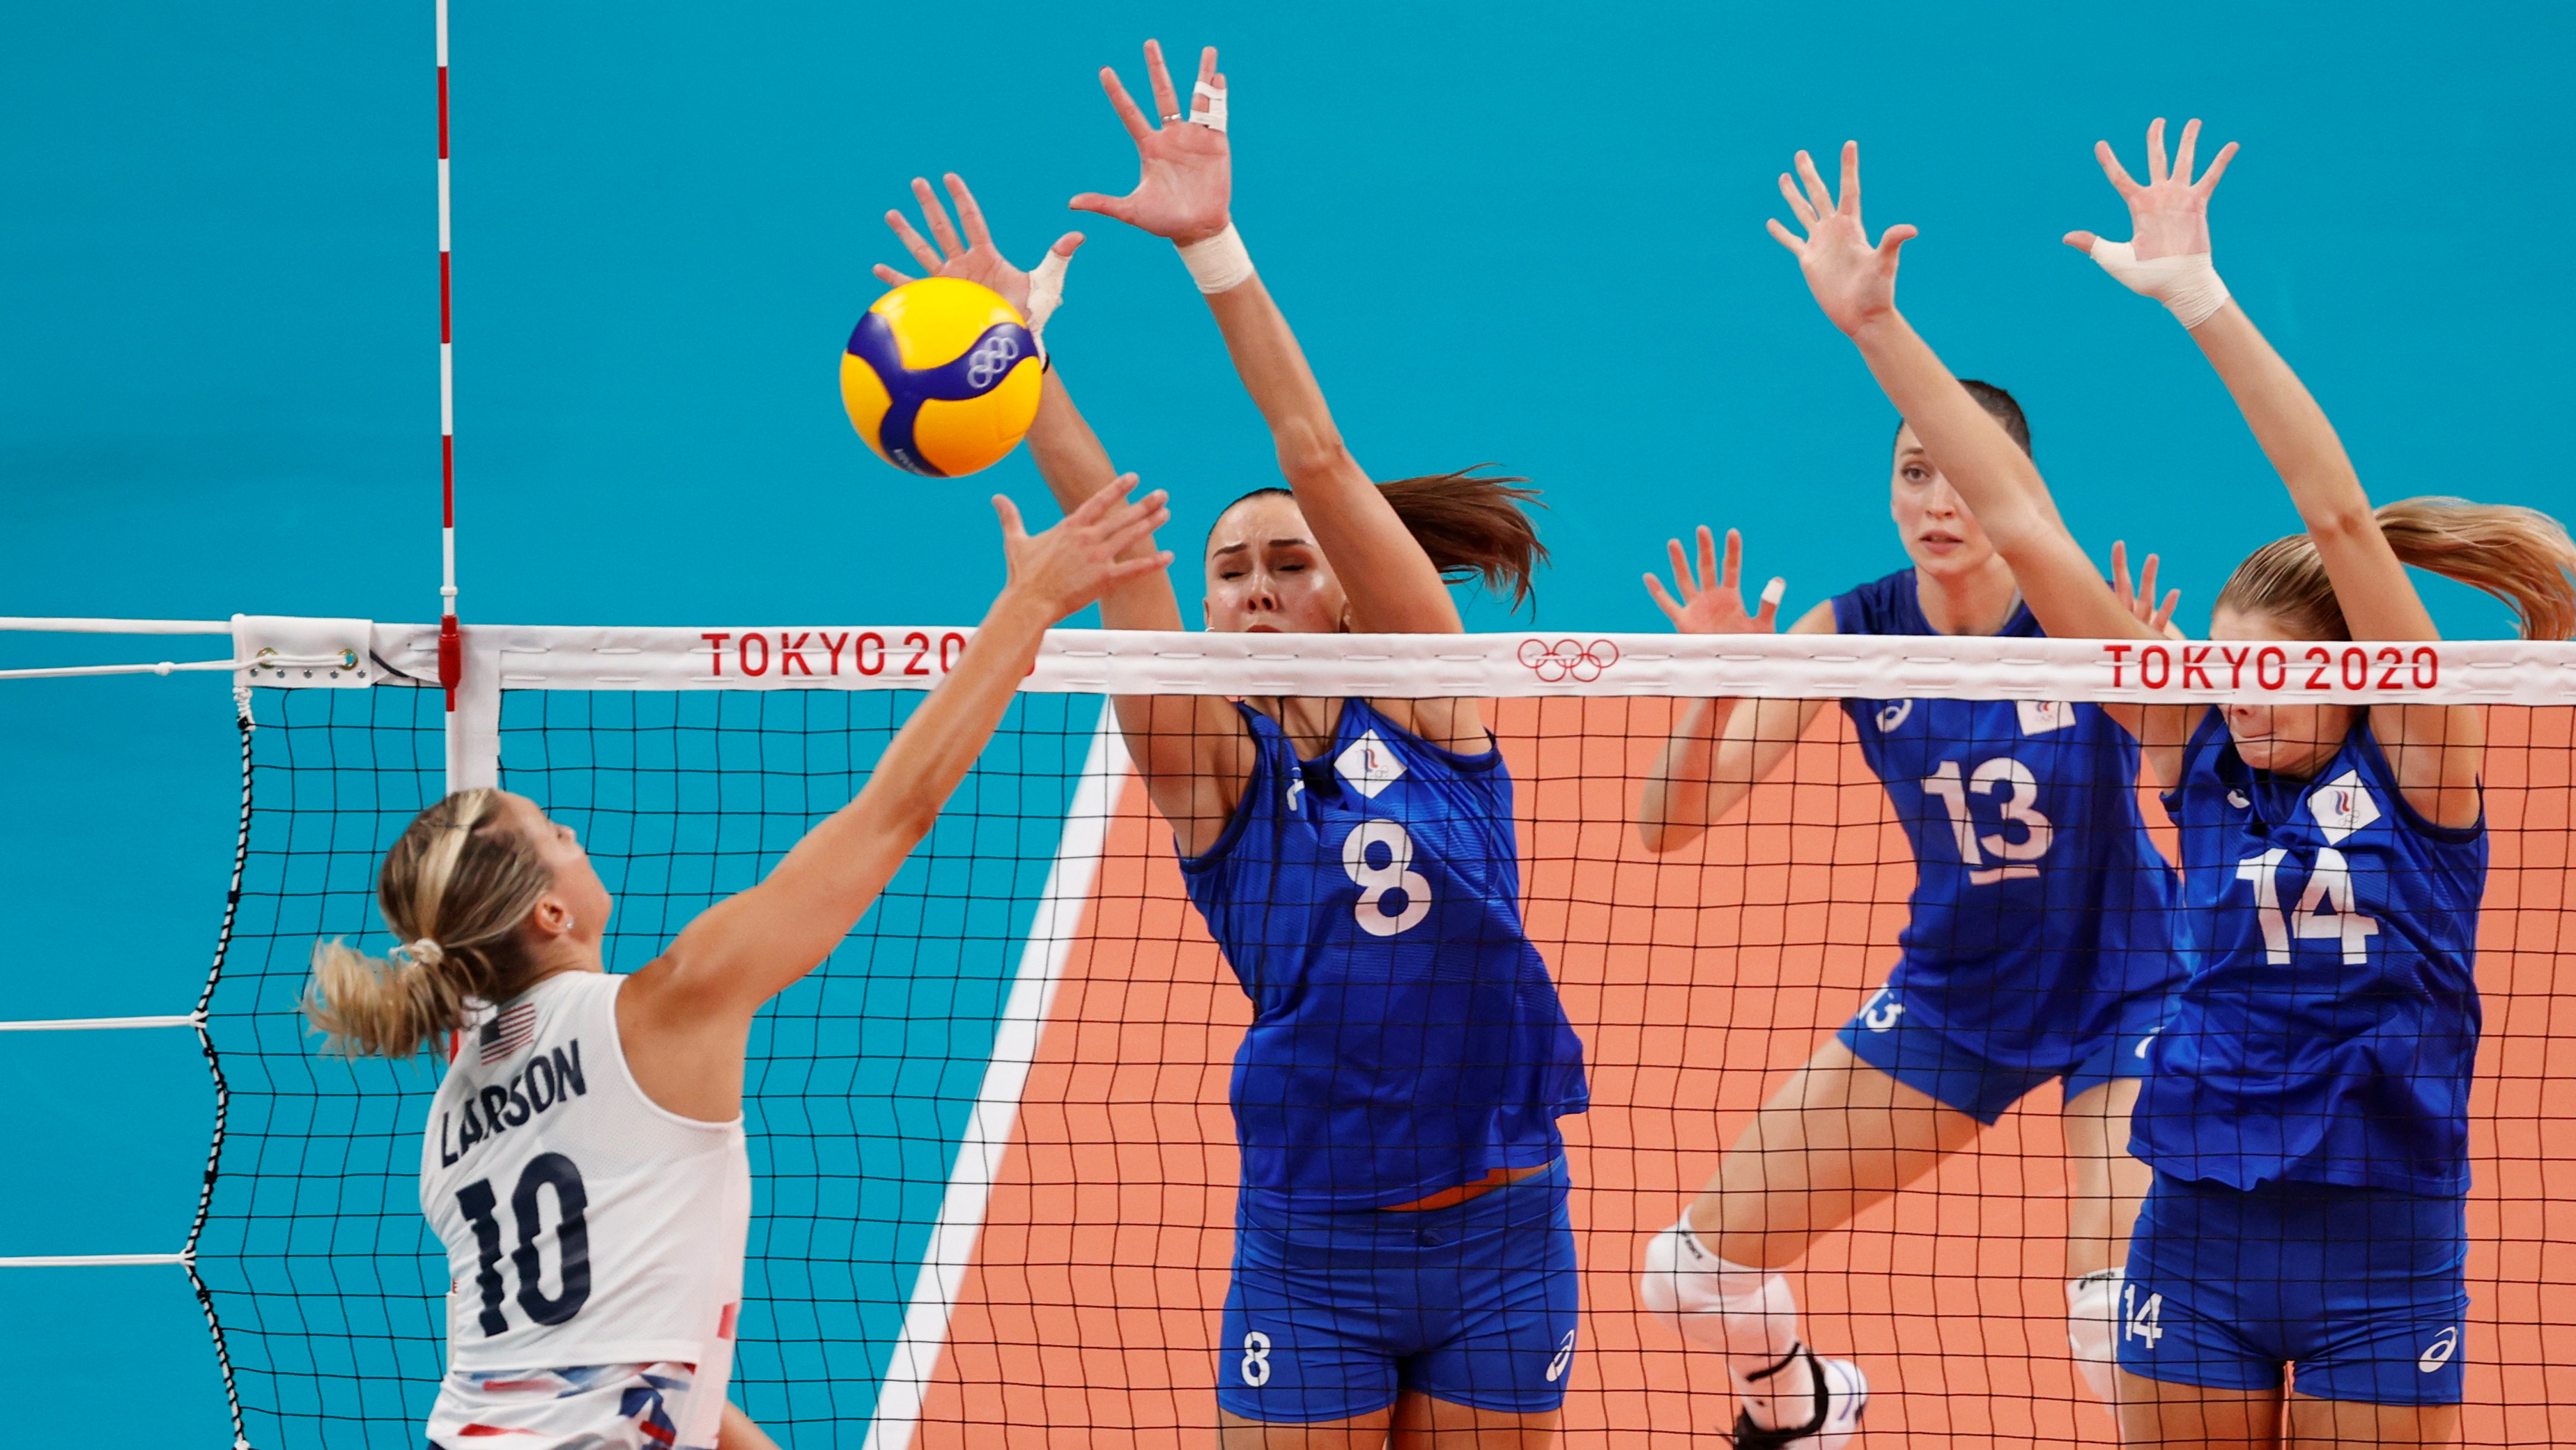 Tokyo 2020 Olympics - Volleyball - Women's Pool B - United States v The Russian Olympic Committee - Ariake Arena, Tokyo, Japan – July 31, 2021. Jordan Larson of the United States in action with Natalya Goncharova of the Russian Olympic Committee and Irina Fetisova of the Russian Olympic Committee. REUTERS/Valentyn Ogirenko